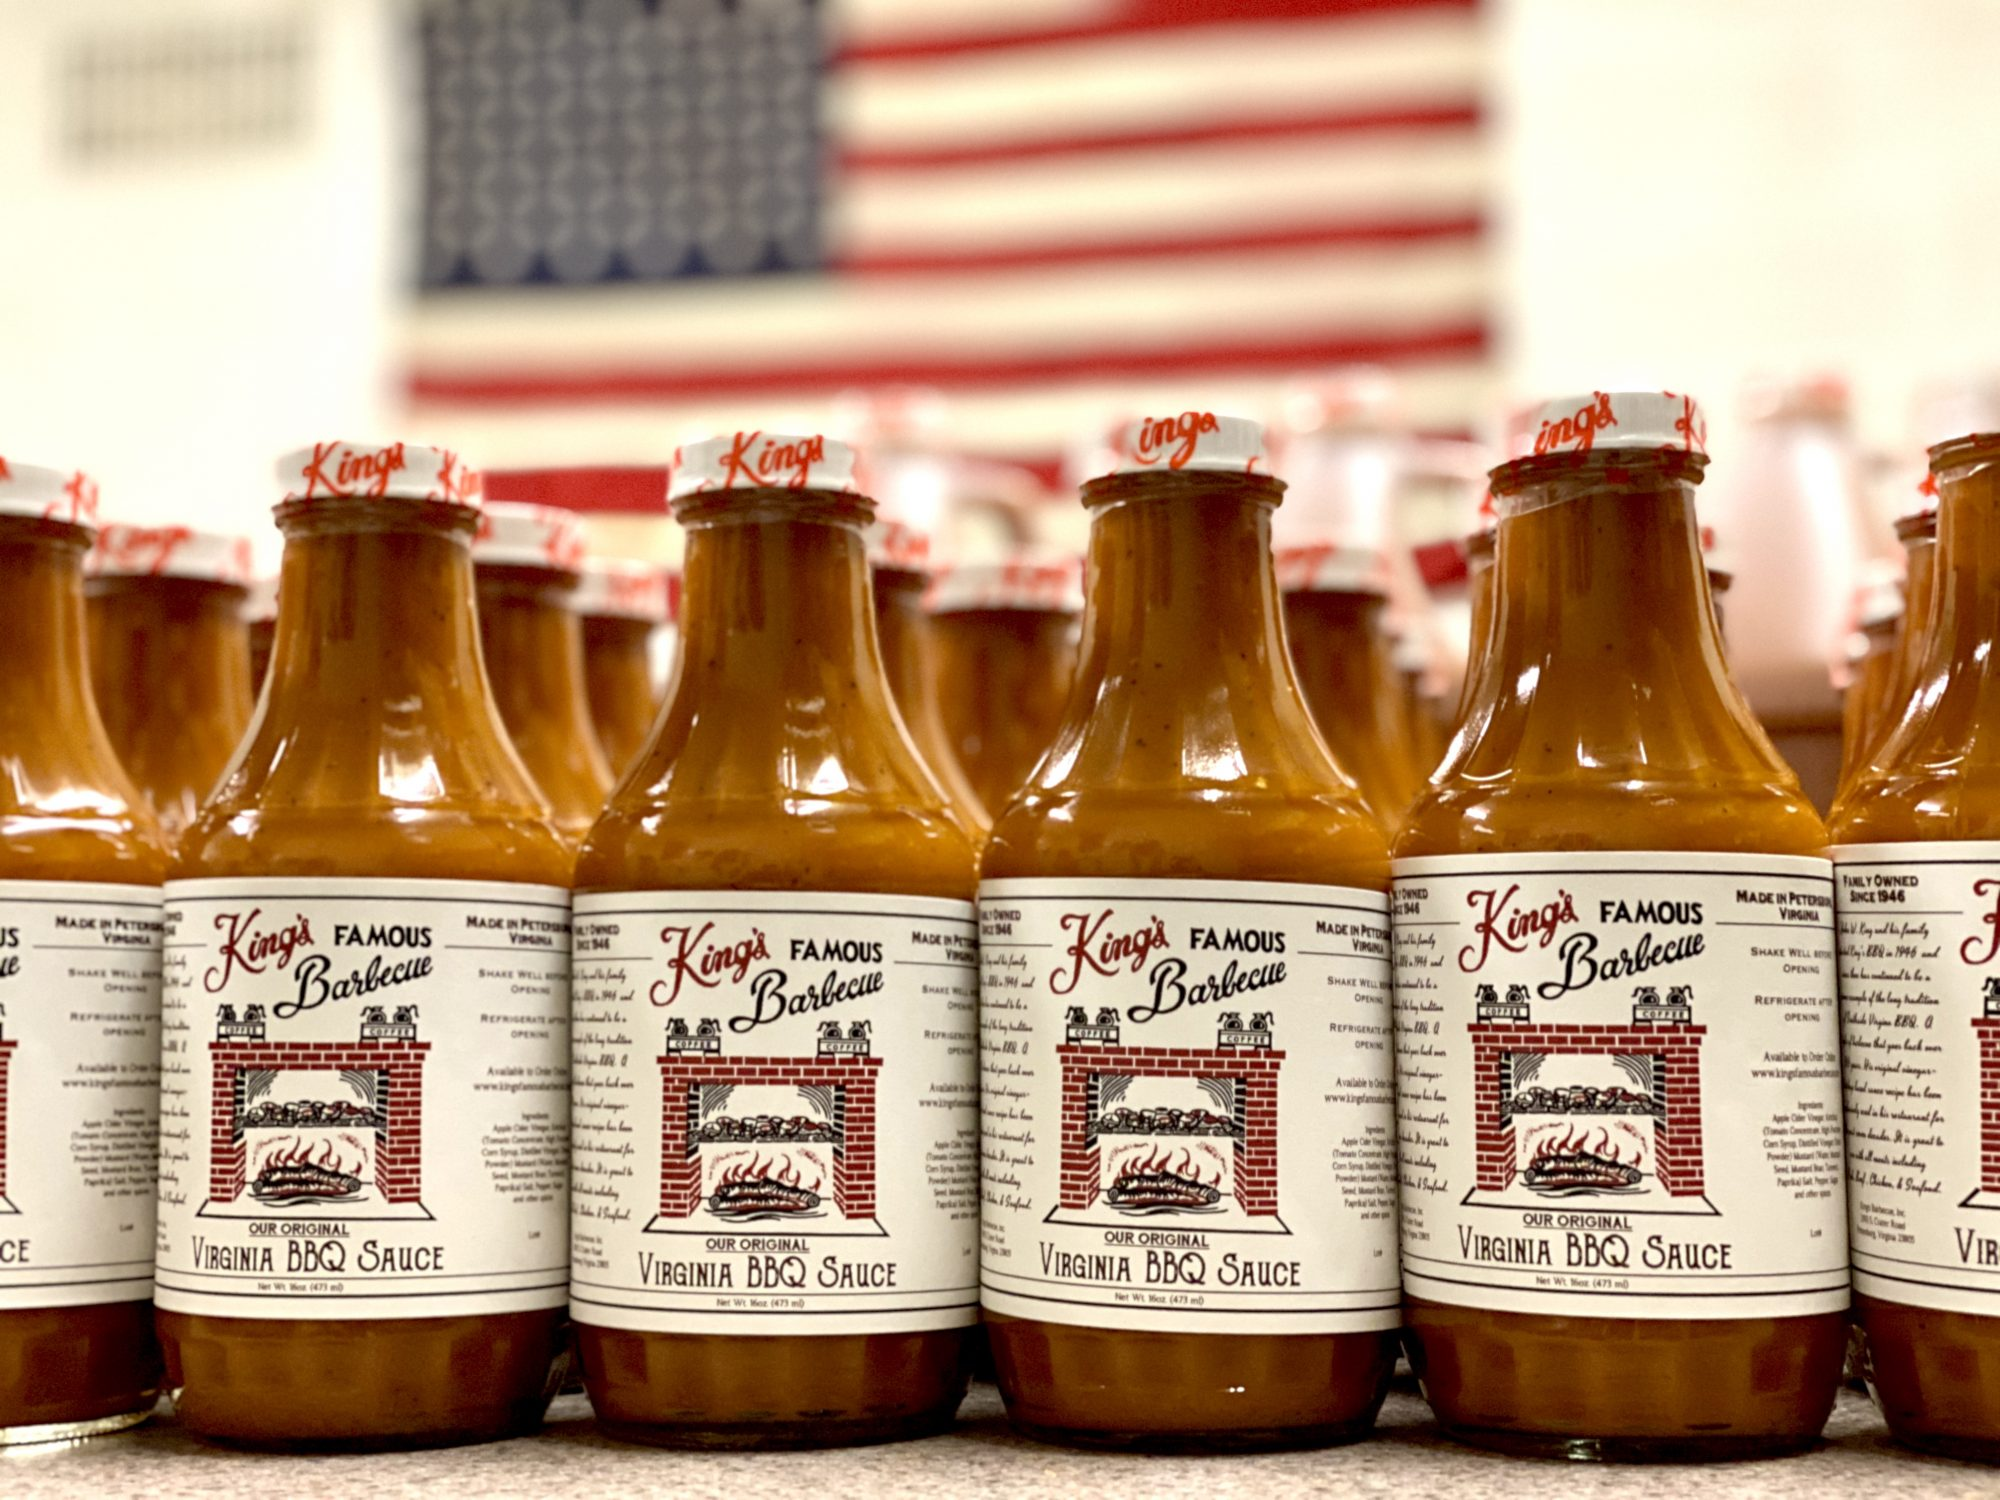 King's Barbecue Sauce